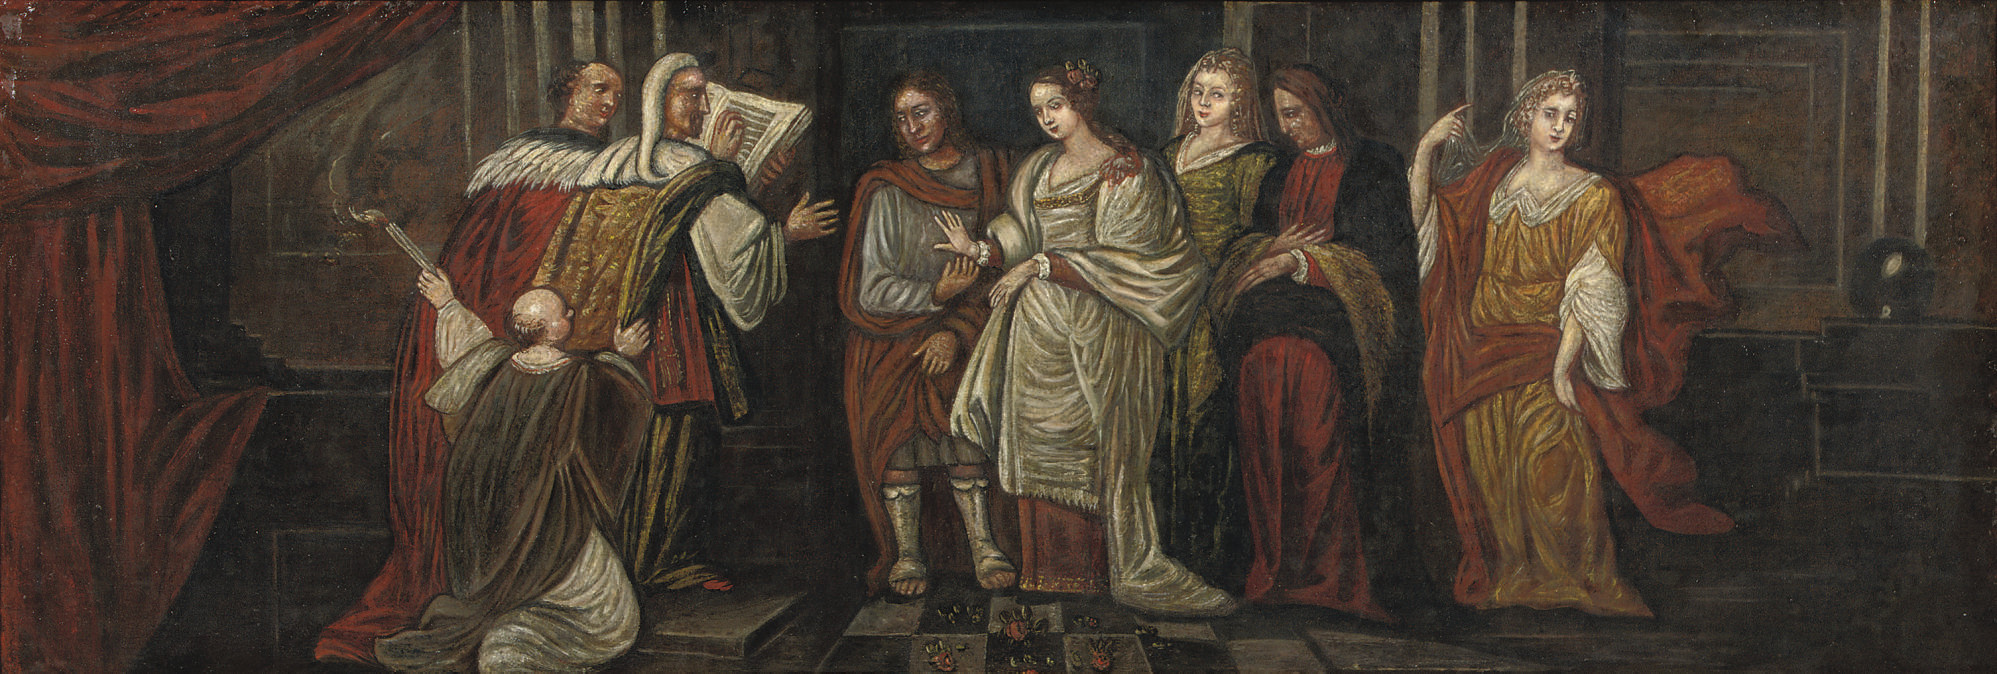 The Marriage of Constantin the Great and Faustina